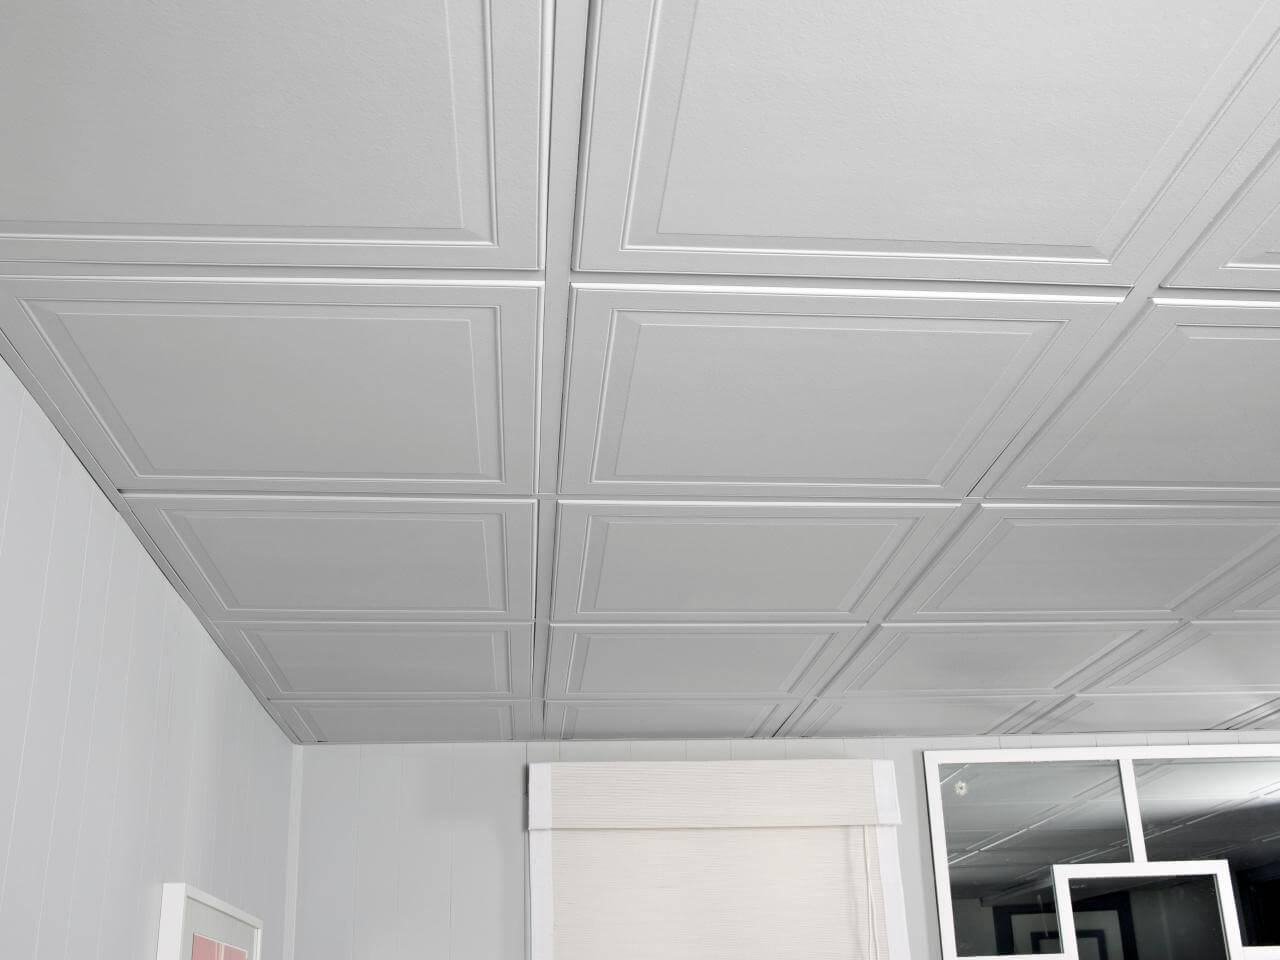 Soundproofed ceilings are quite the game changer